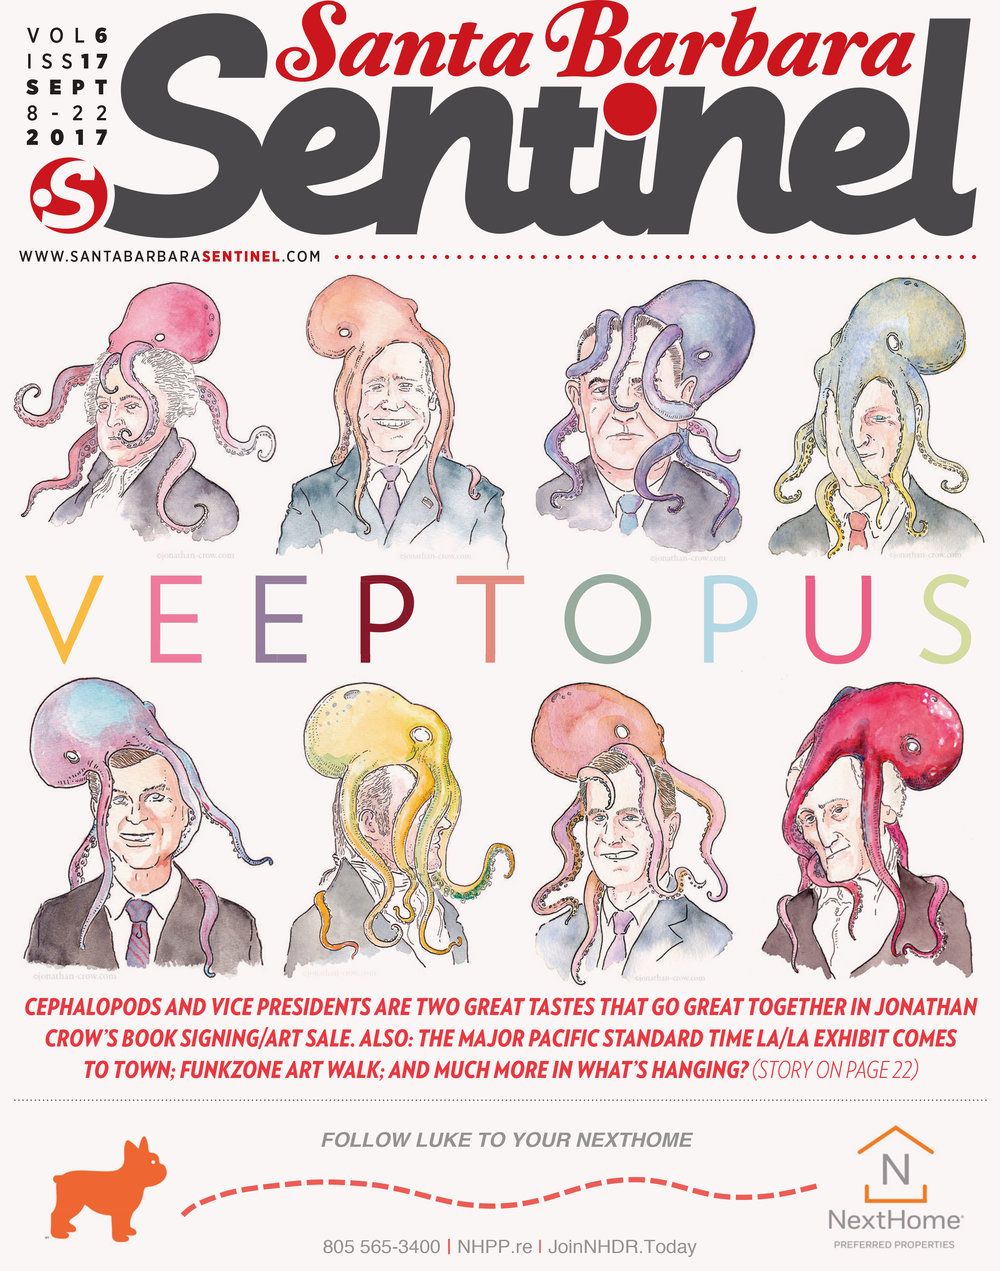 Veeptopus on the cover of the Santa Barbara Sentinel, September 2017